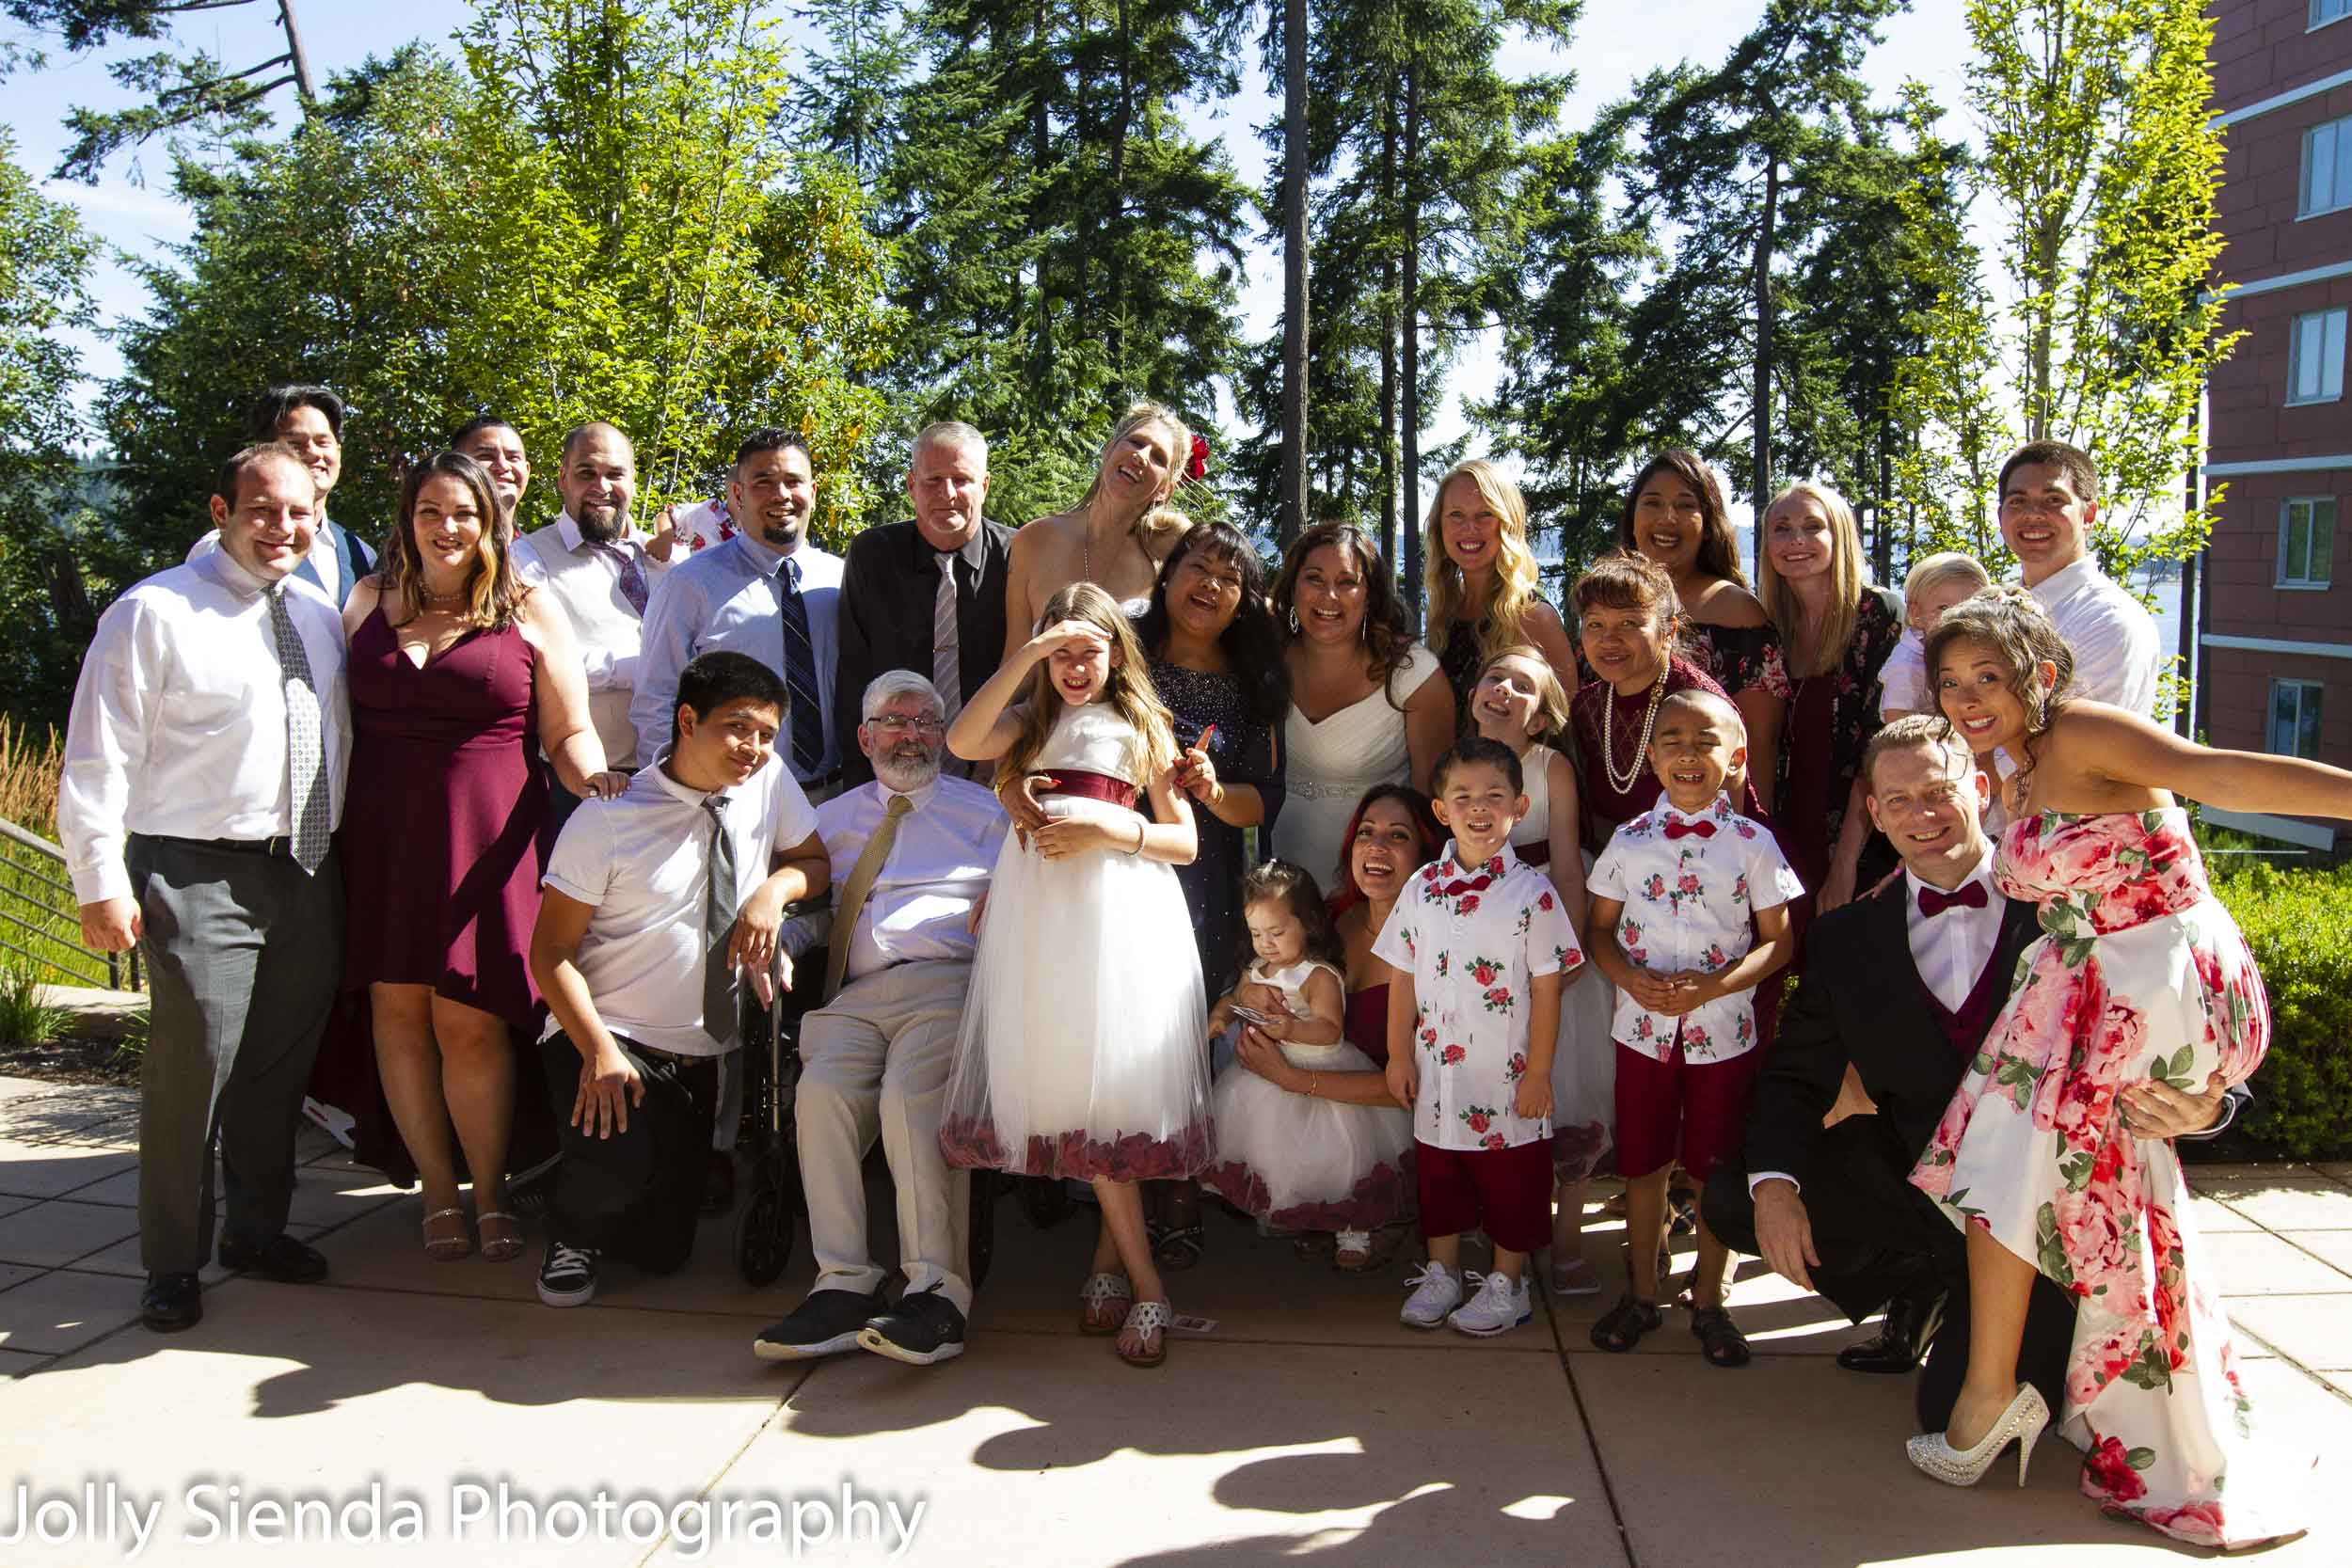 Weddings are all about family, friends, and LOVE!